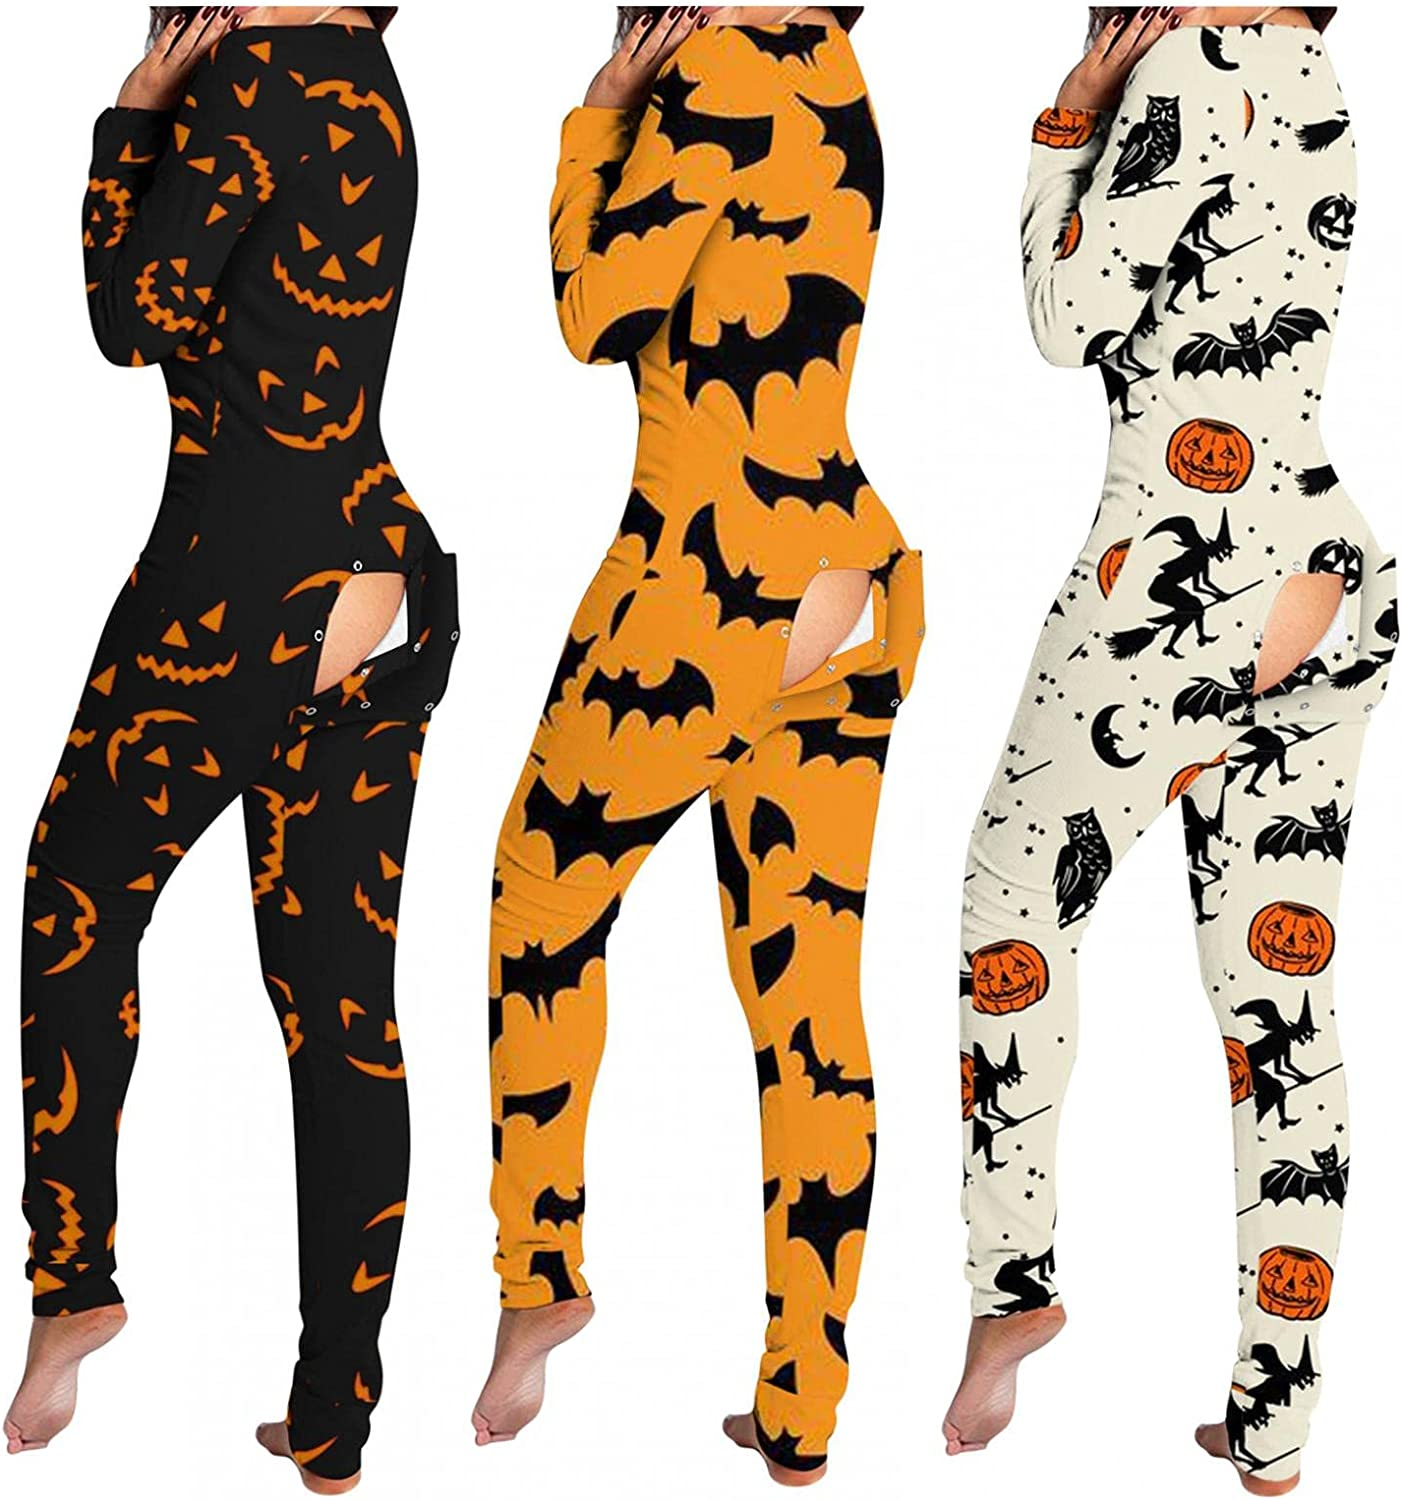 Lingbing Halloween Jumpsuits for Women, Funny Pumpkin Witch Graphic Bodysuit Sexy V Neck Lingerie Pajamas with Butt Flap